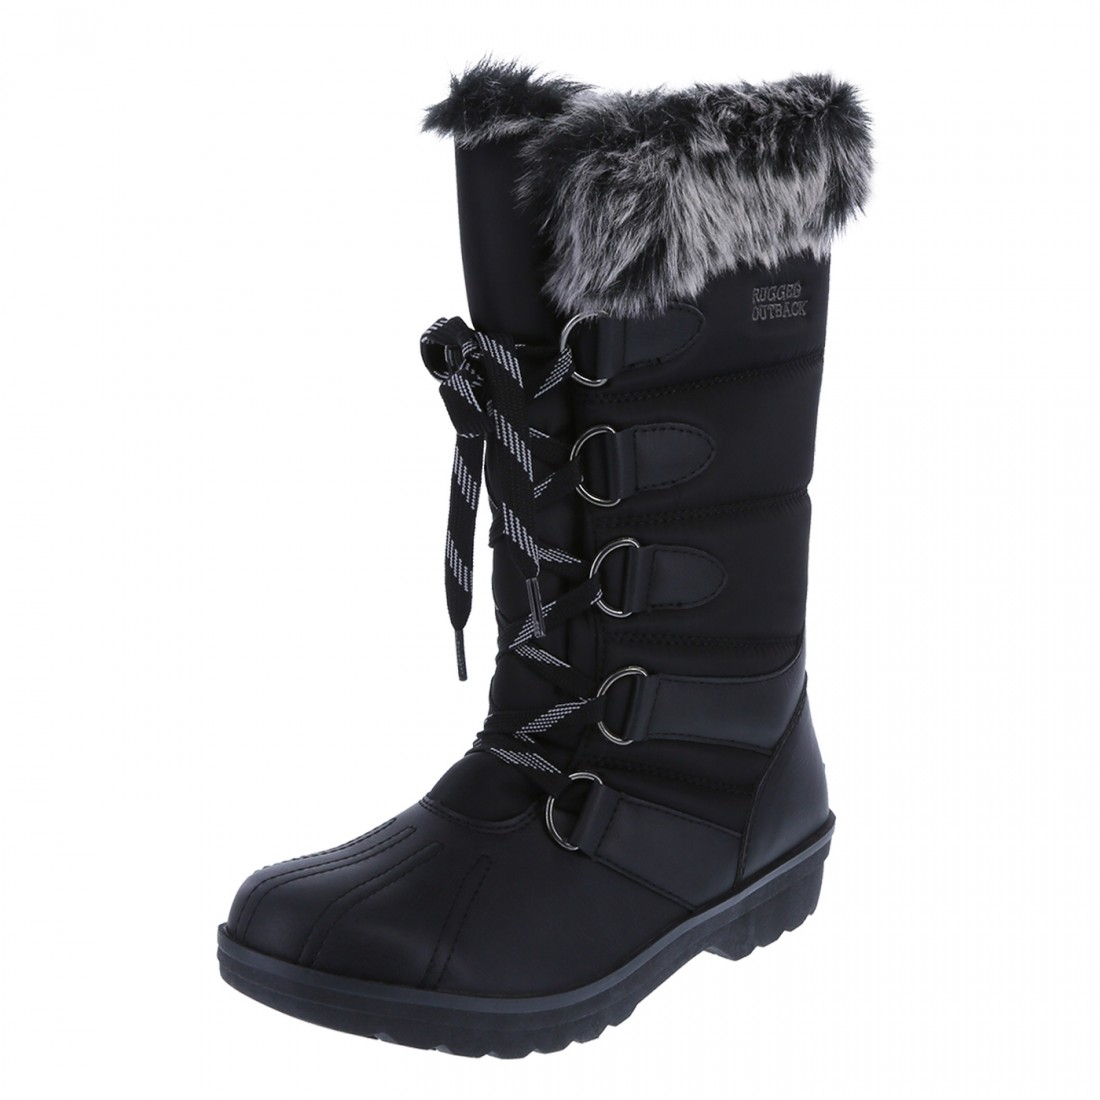 Getting Winter Ready Roundup Of Winter Boots From